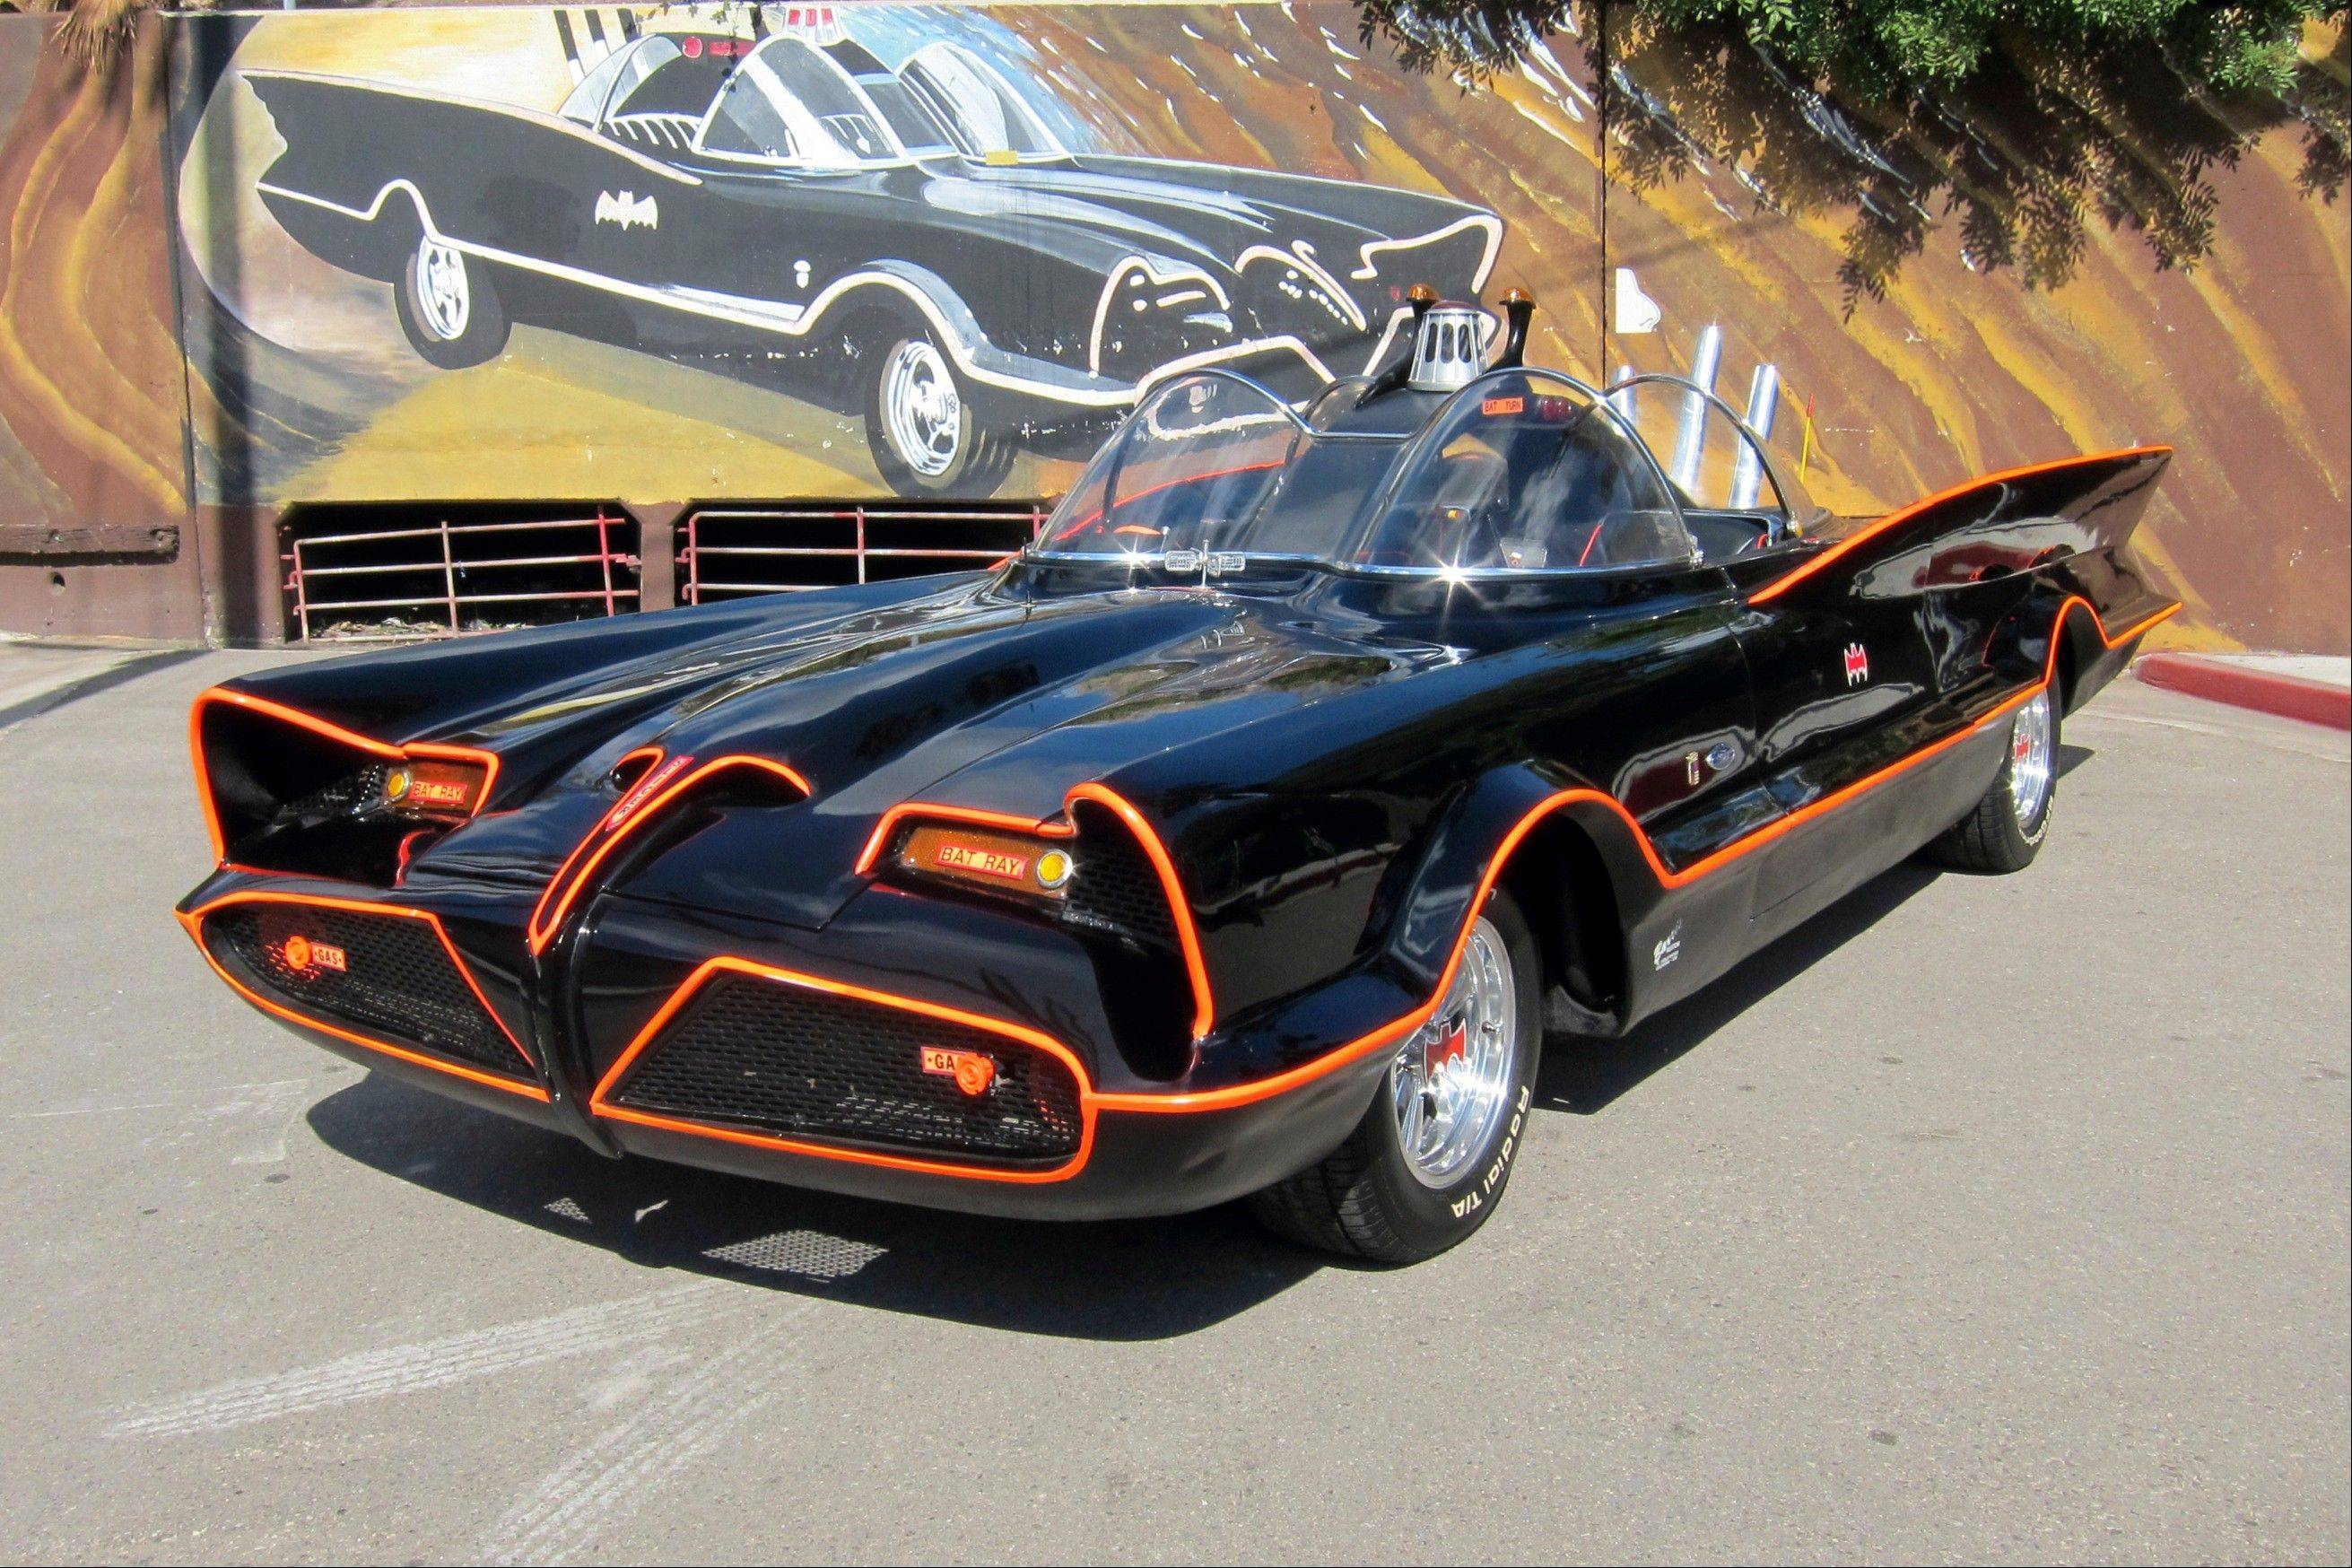 The original Batmobile in Los Angeles. Batman�s original ride, from the 1960s TV series, has sold at auction for $4.2 million.